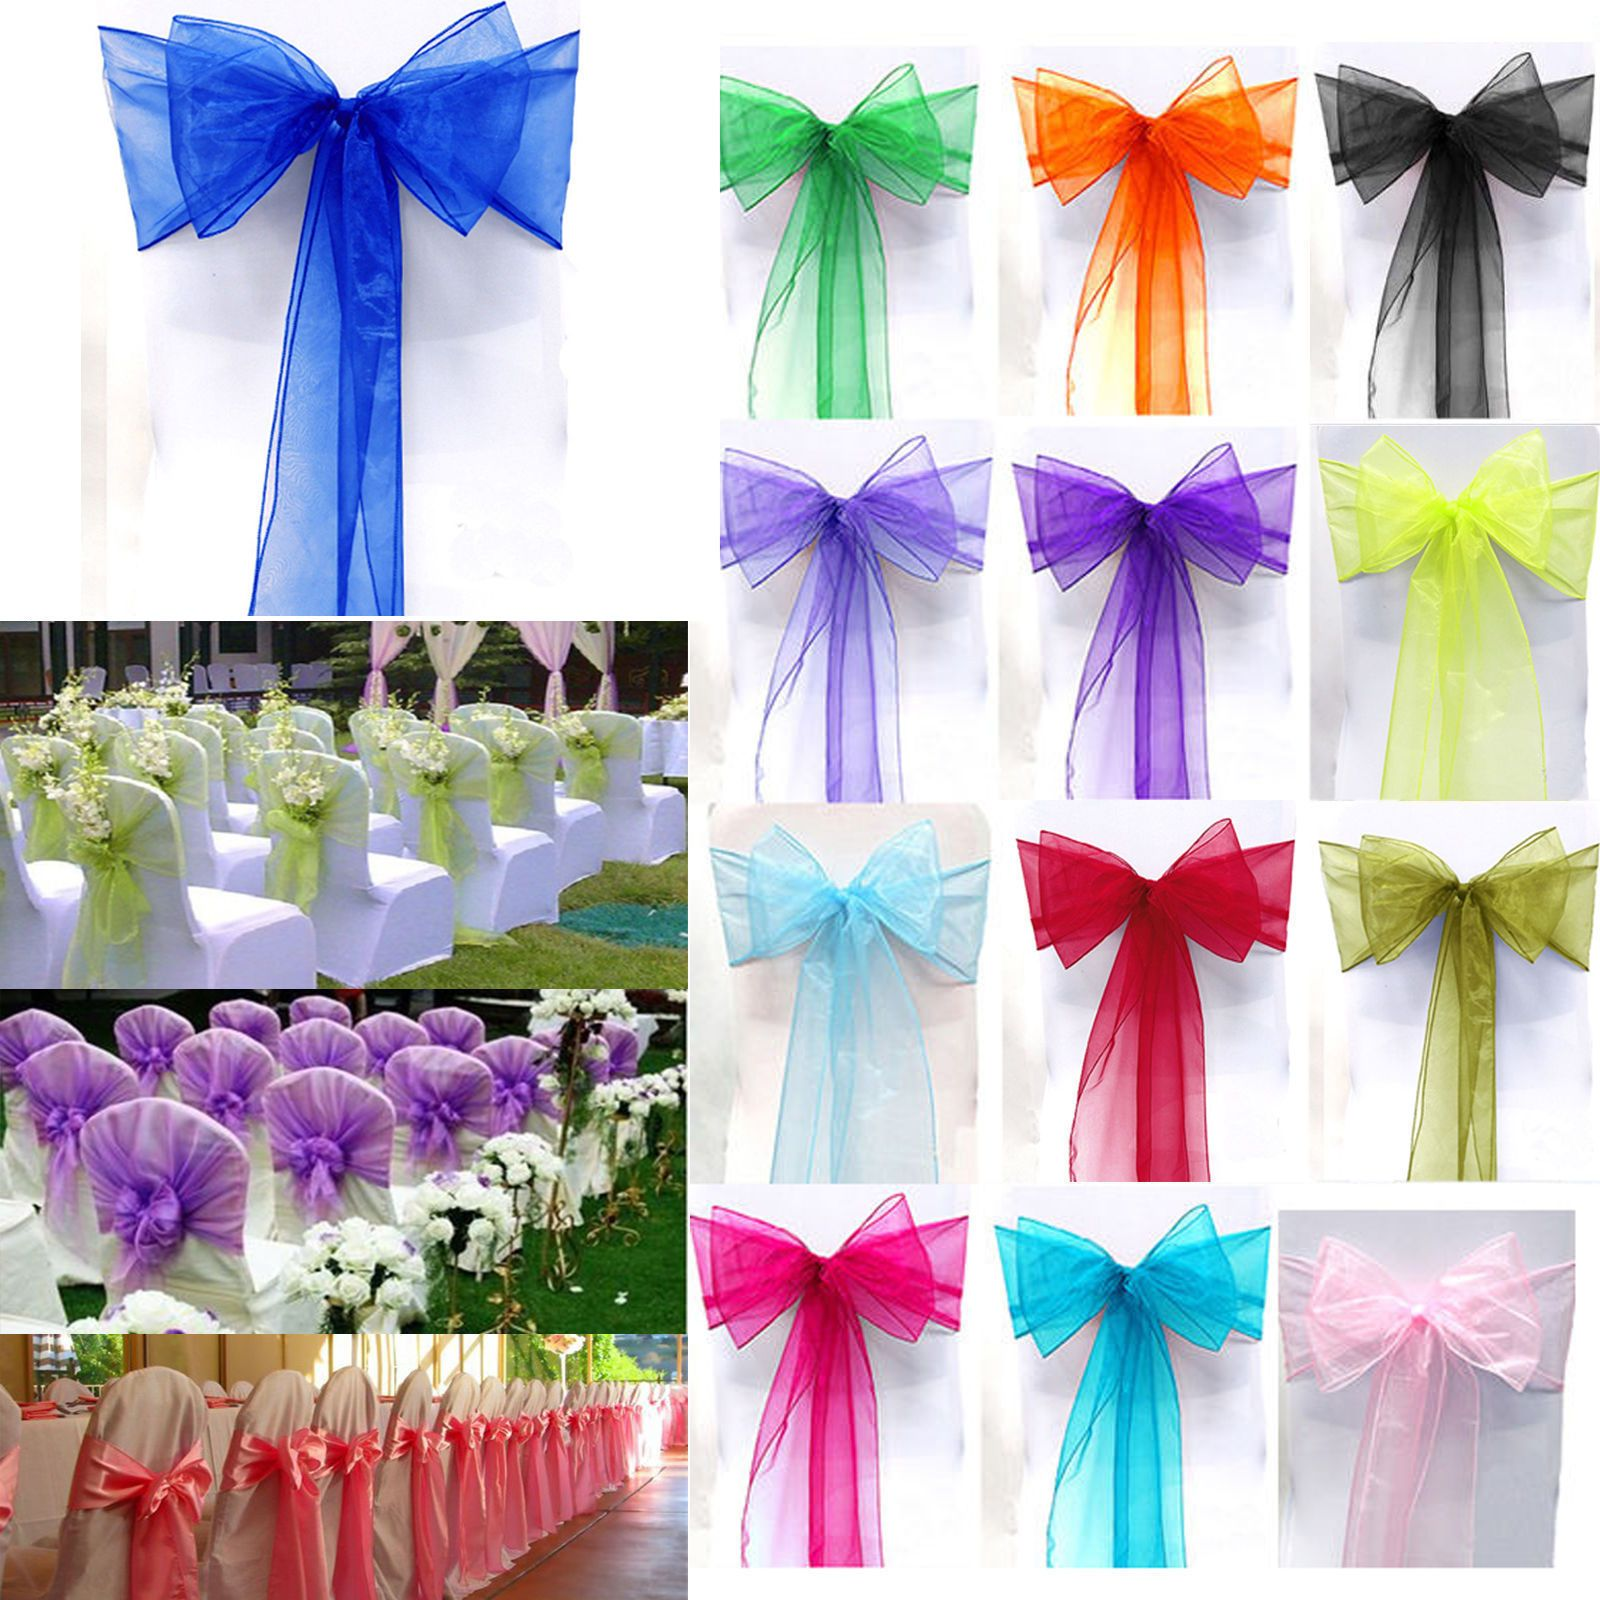 1 15 aud 1 10 50 100 organza sashes chair cover bows wedding